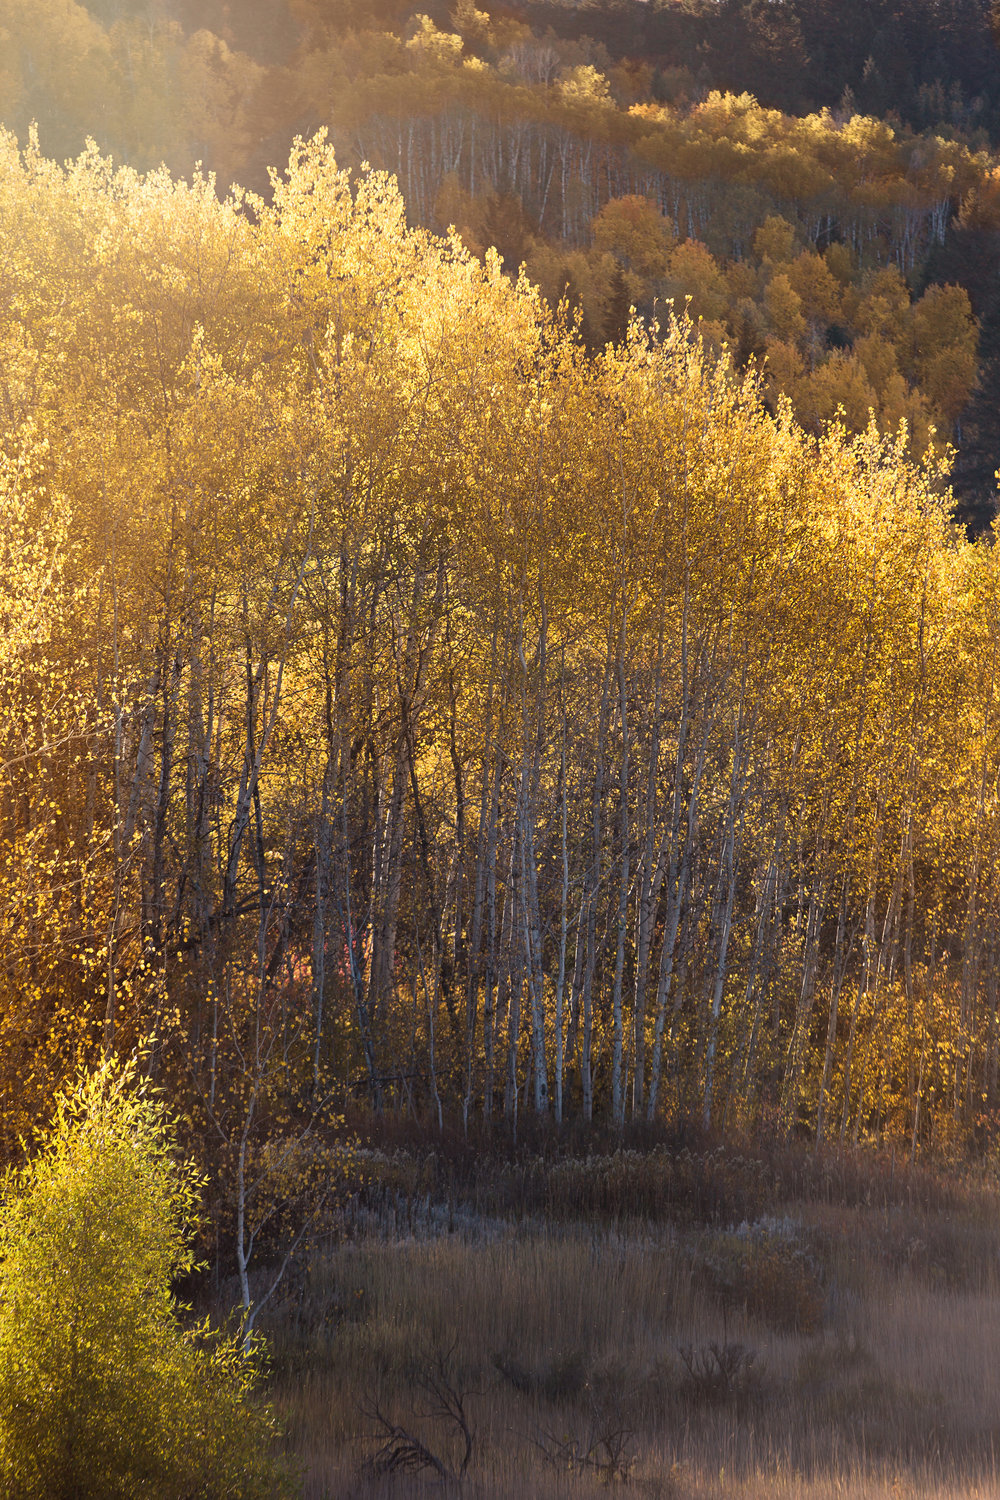 Cindy_Giovagnoli_Idaho_Wyoming_Grand_Teton_National_Park_autumn_aspens_camping_mountains-010.jpg